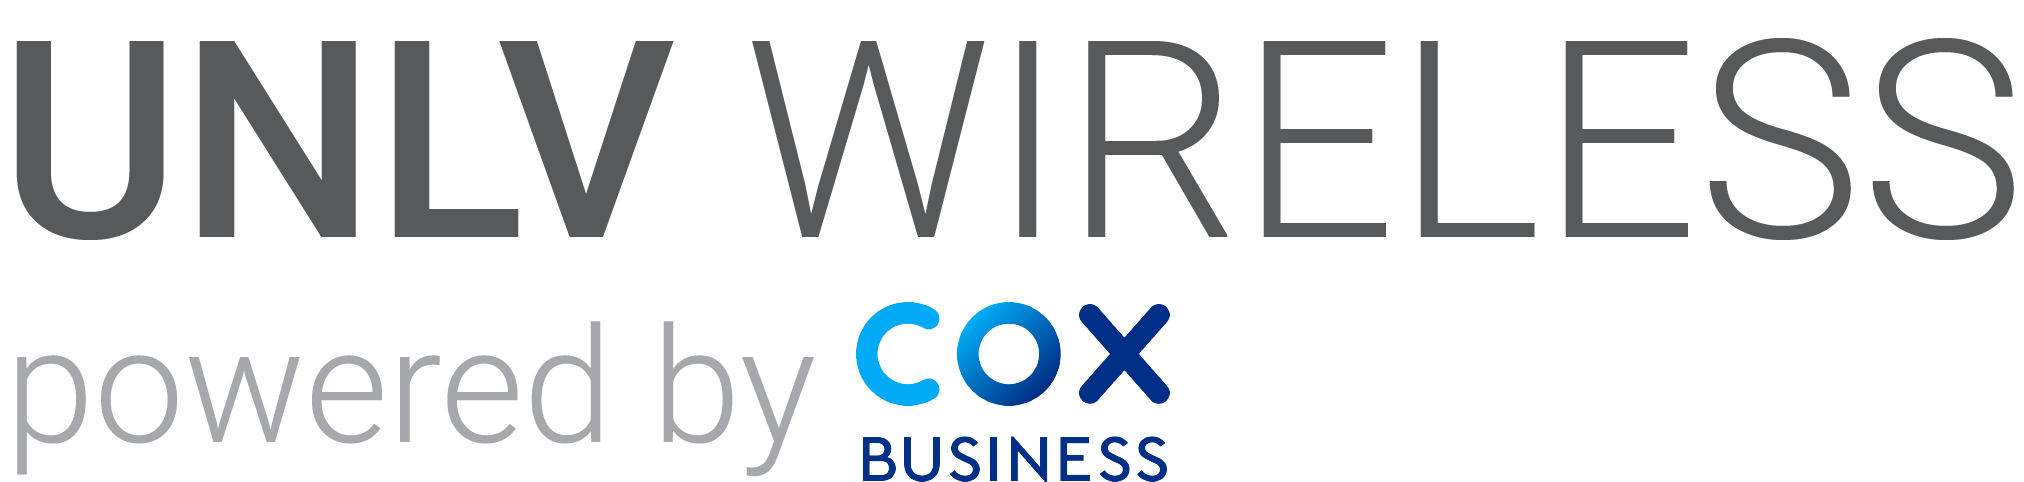 UNLV Wireless powered by Cox Business